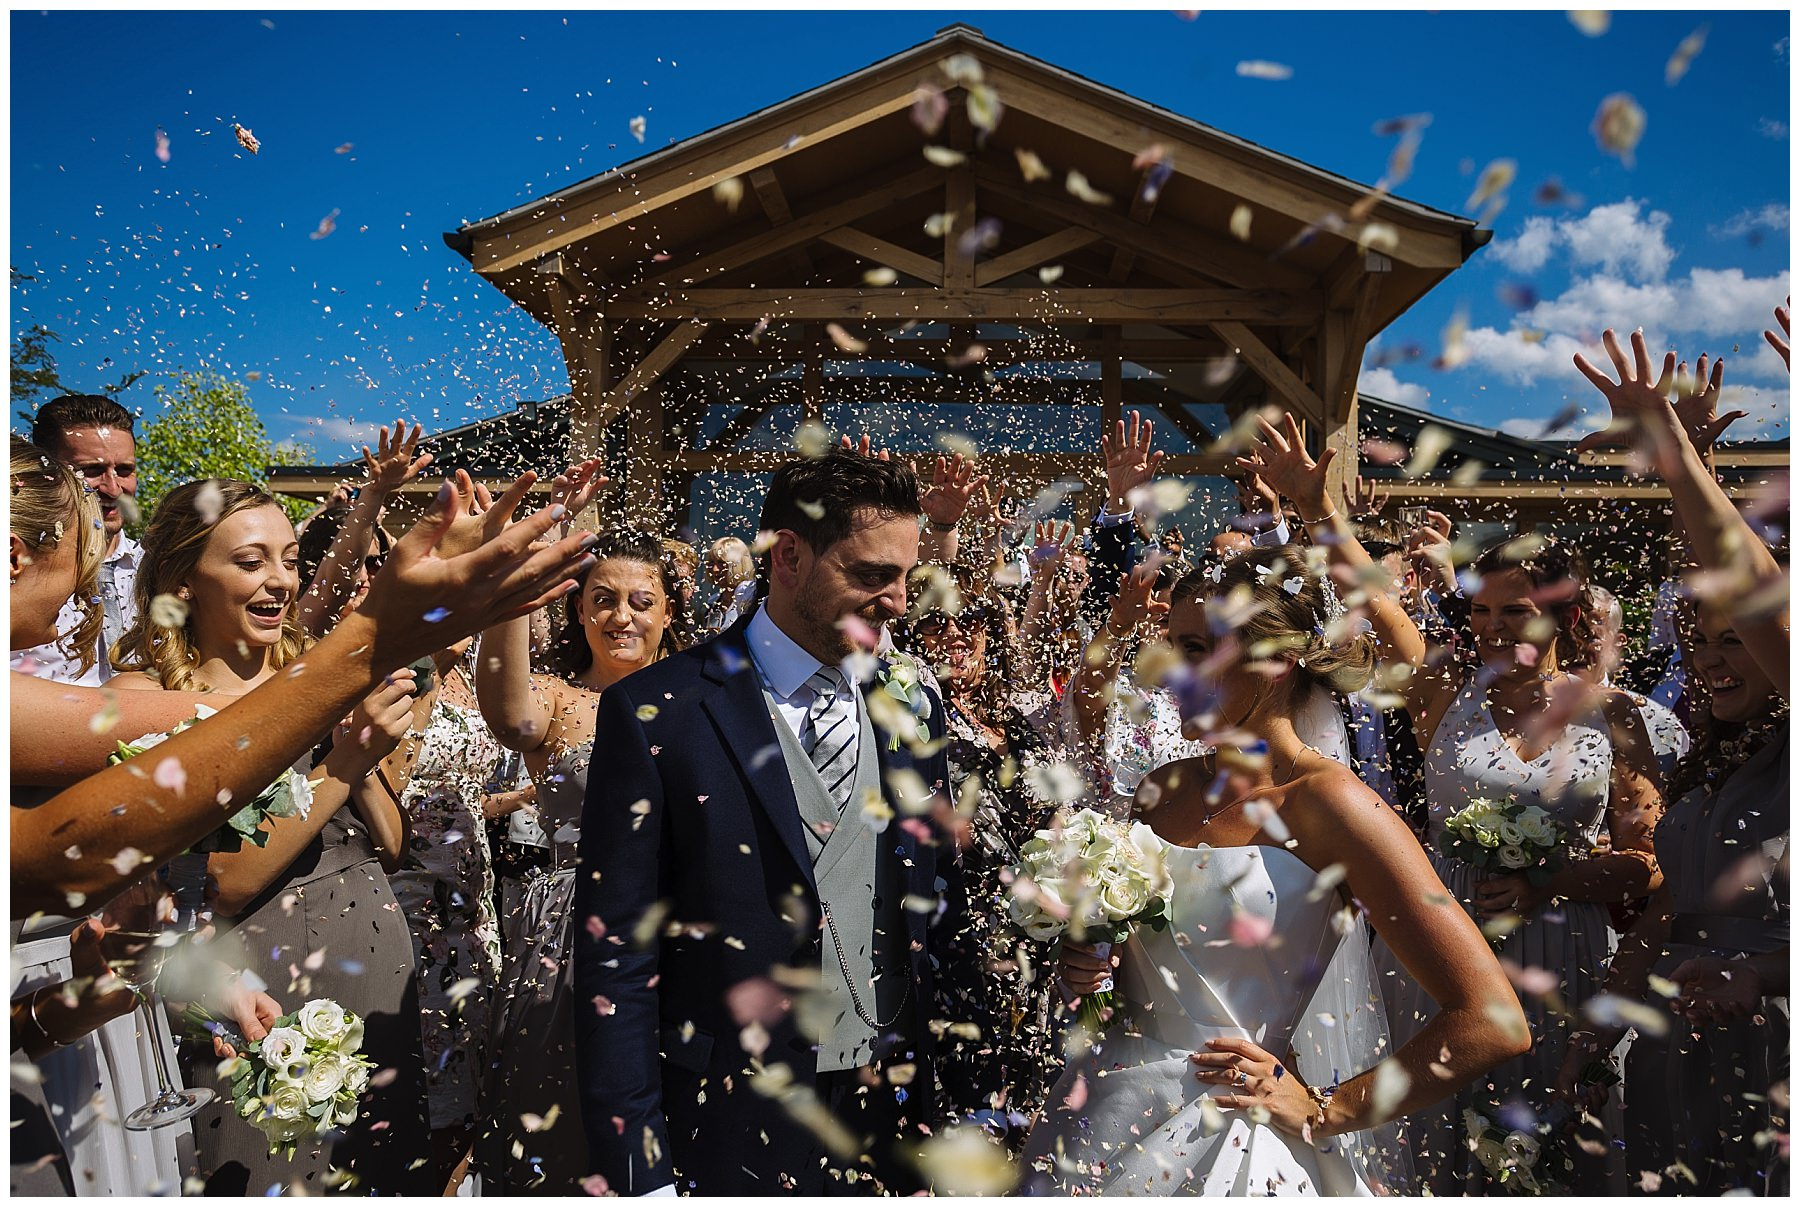 Wedding Confetti at Pryors Hayes Wedding Venue